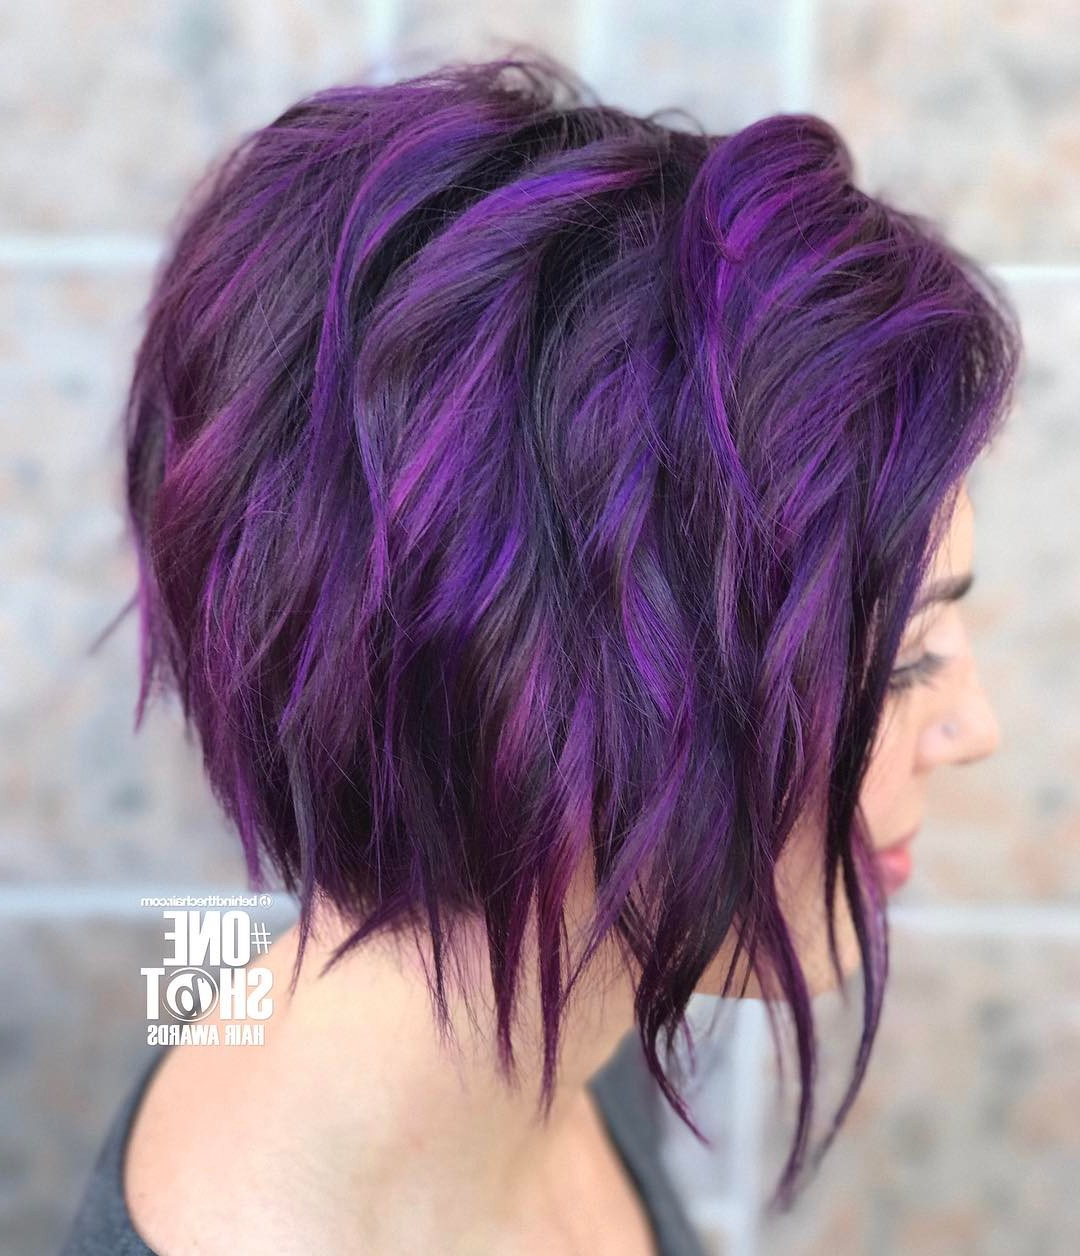 10 Chic Short Bob Haircuts That Balance Your Face Shape! – Short Inside Purple And Black Short Hairstyles (View 11 of 25)